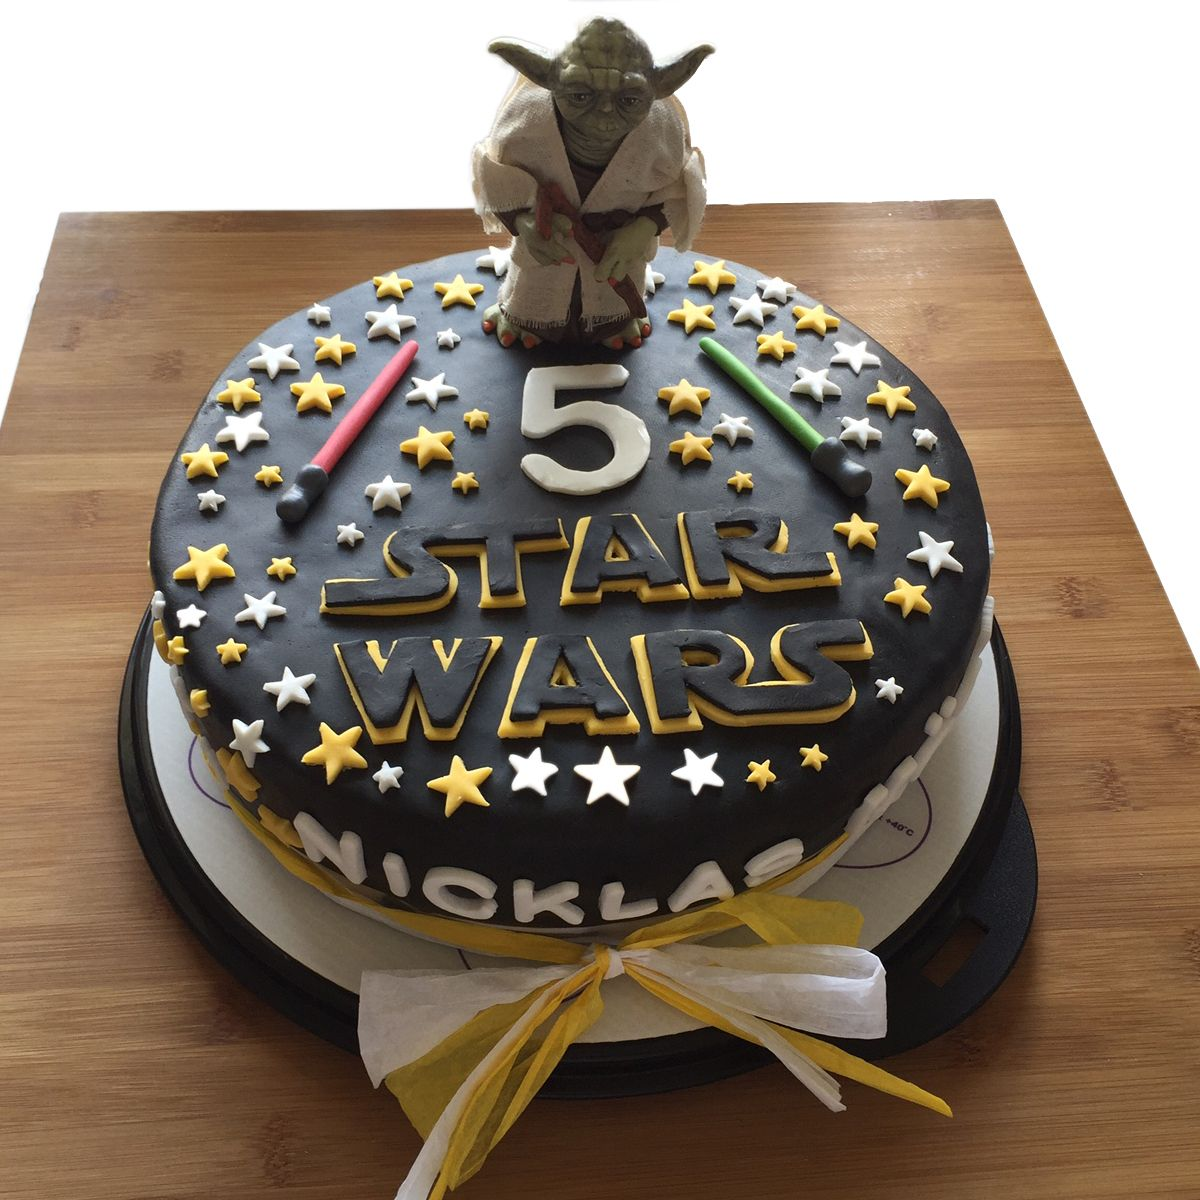 star wars fondant torte motivtorte geburtstags kuchen cake 3 motivtorten pinterest kuchen. Black Bedroom Furniture Sets. Home Design Ideas